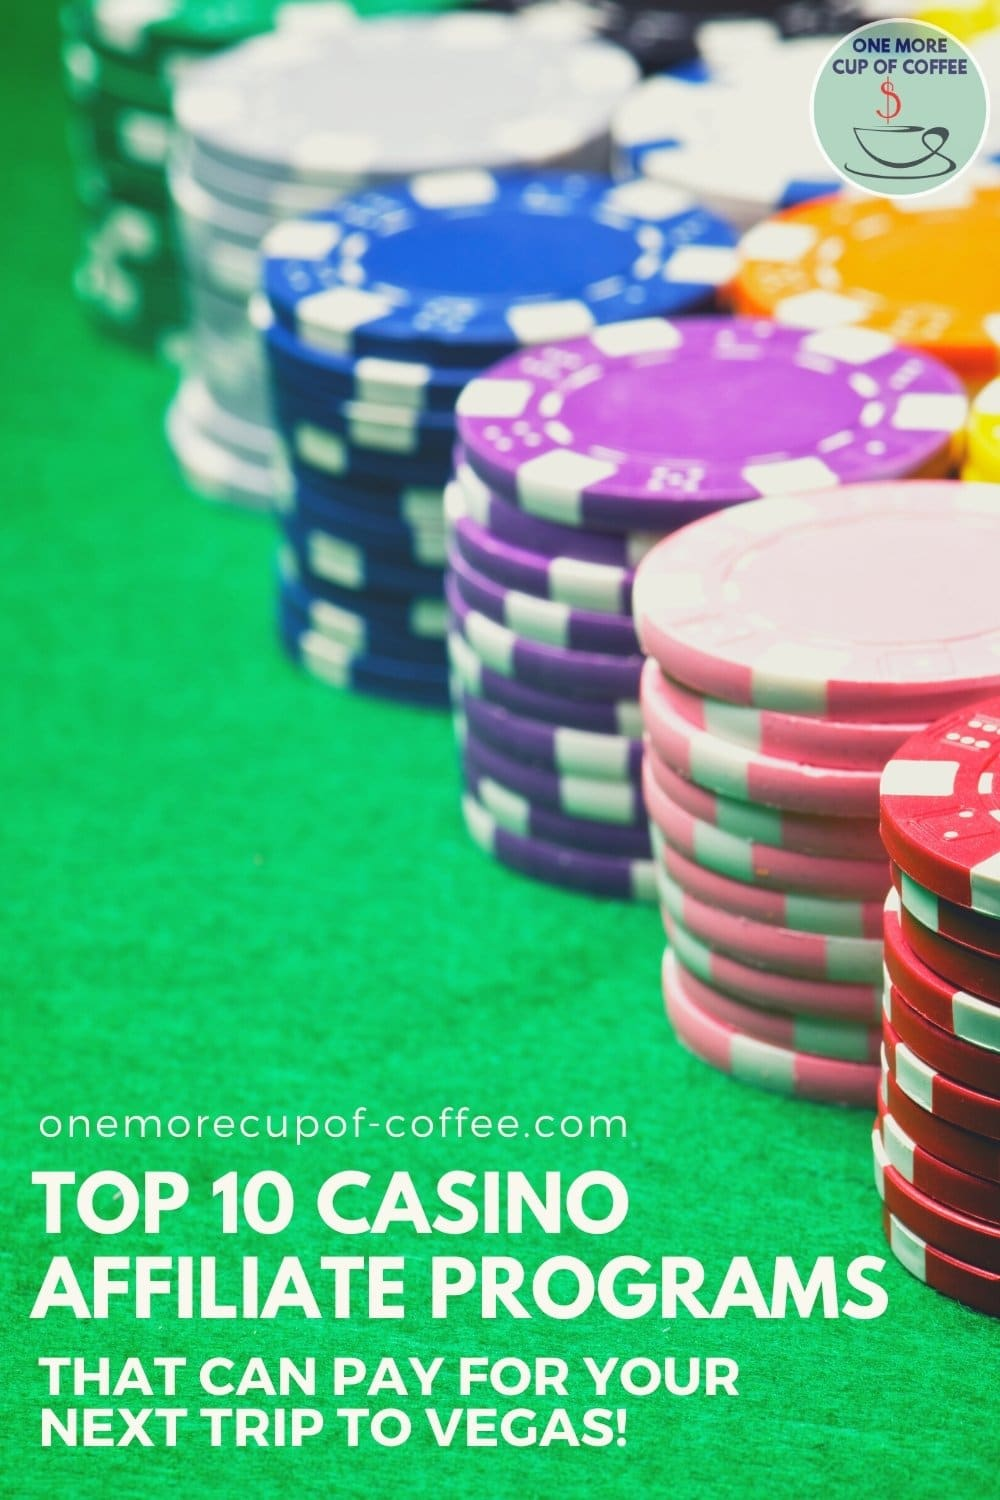 """stacks of casino chips on green felt, with text overlay """"Top 10 Casino Affiliate Programs That Can Pay For Your Next Trip To Vegas"""""""